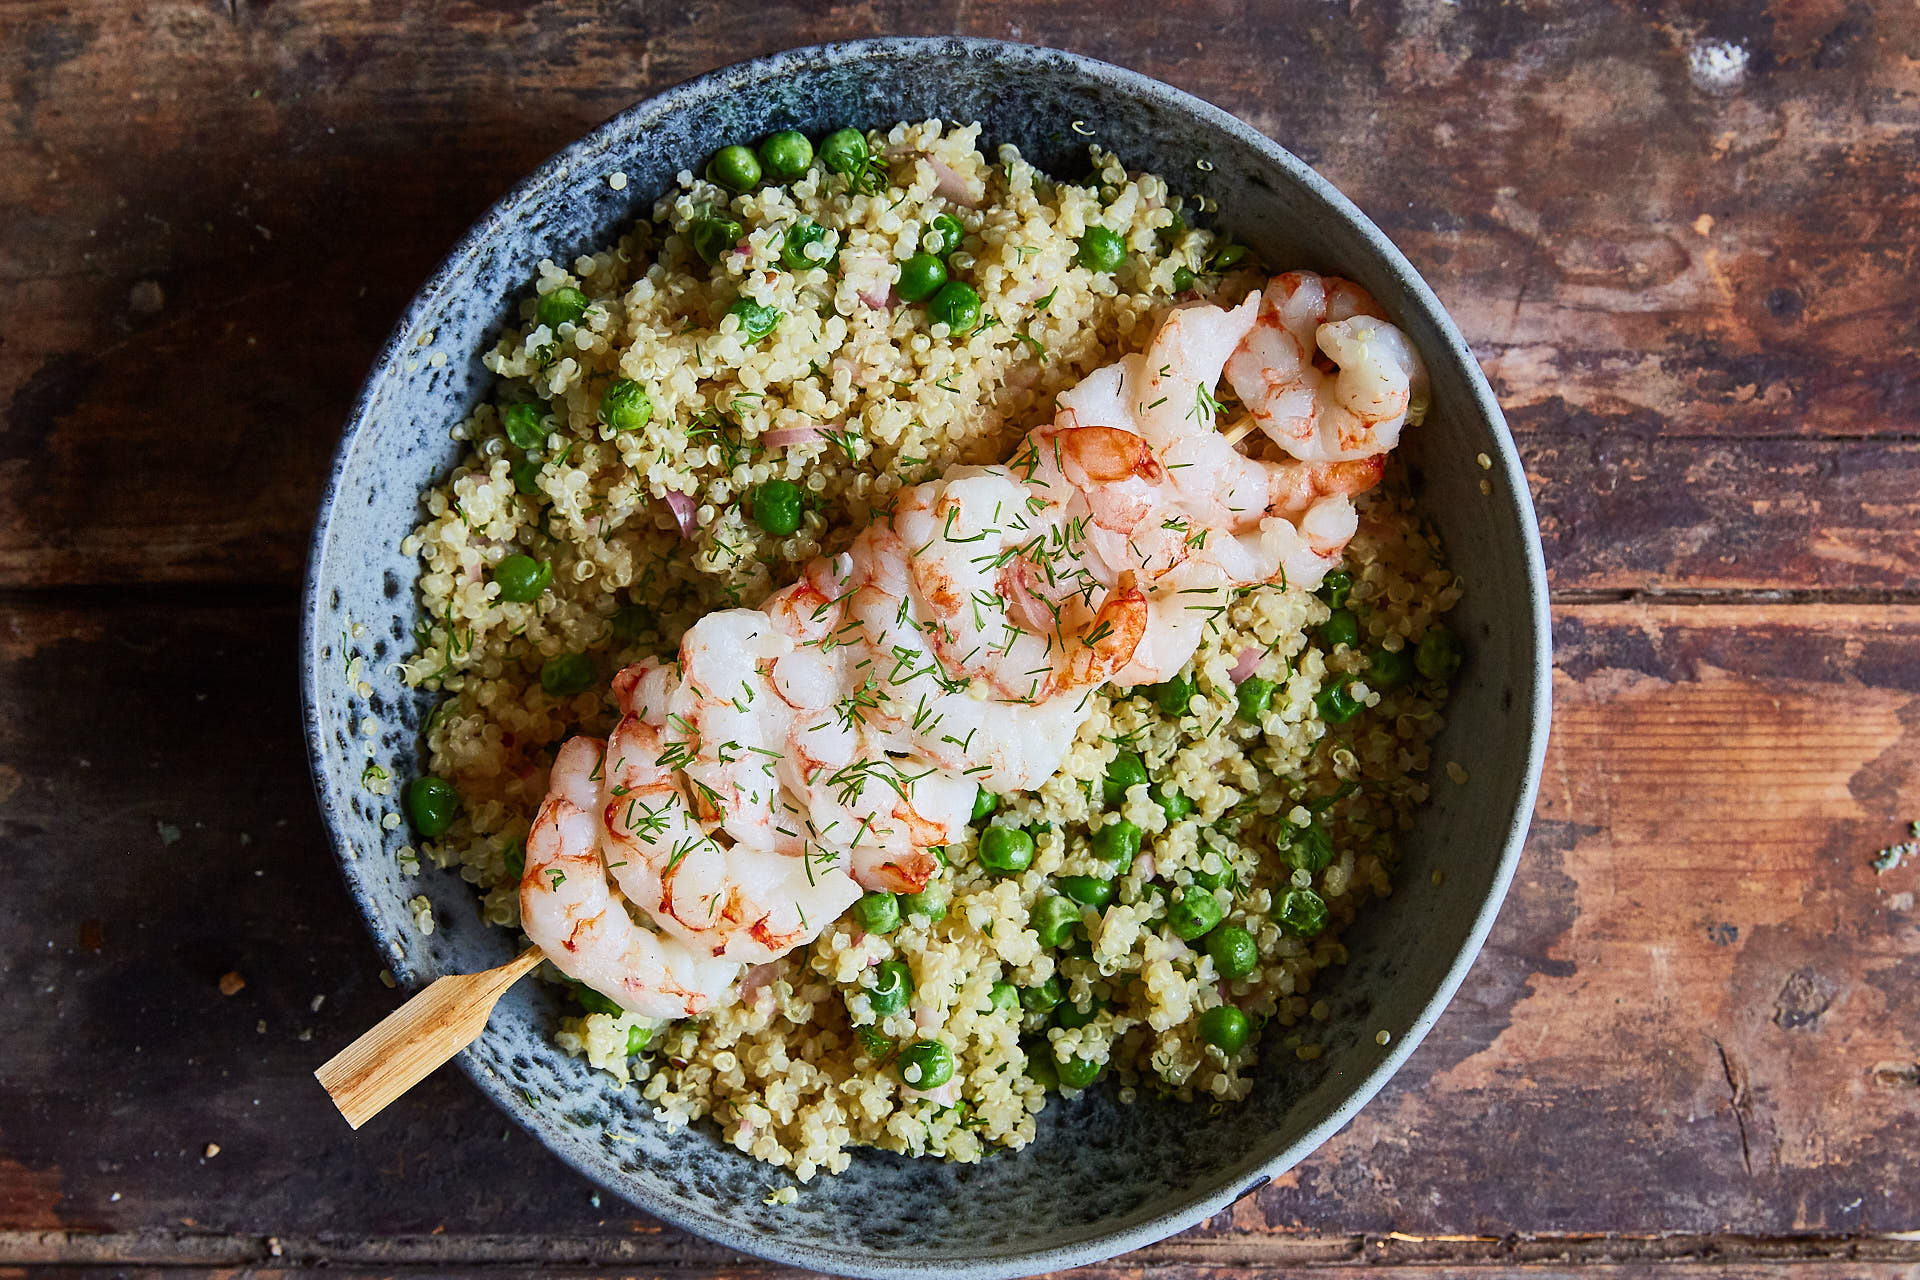 Shrimp Quinoa with Lemon & Dill Dressing